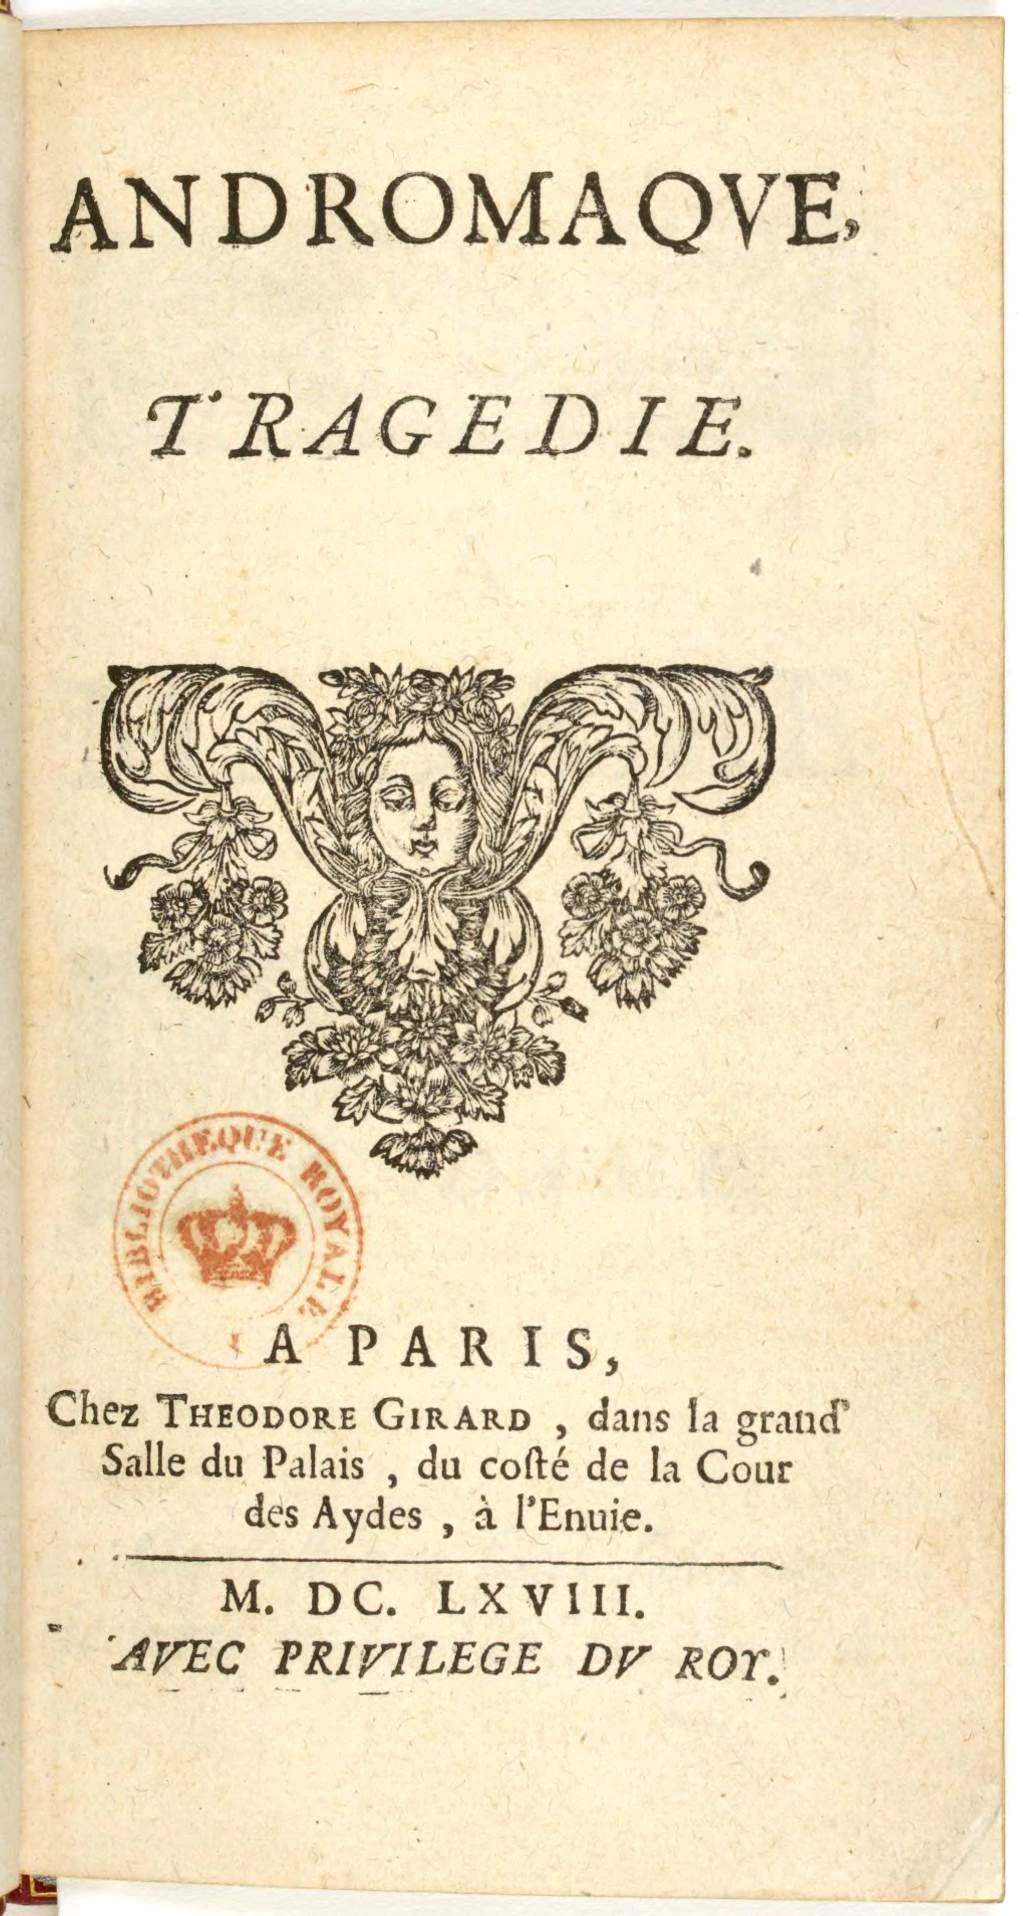 Andromaque 1668 title page.JPG